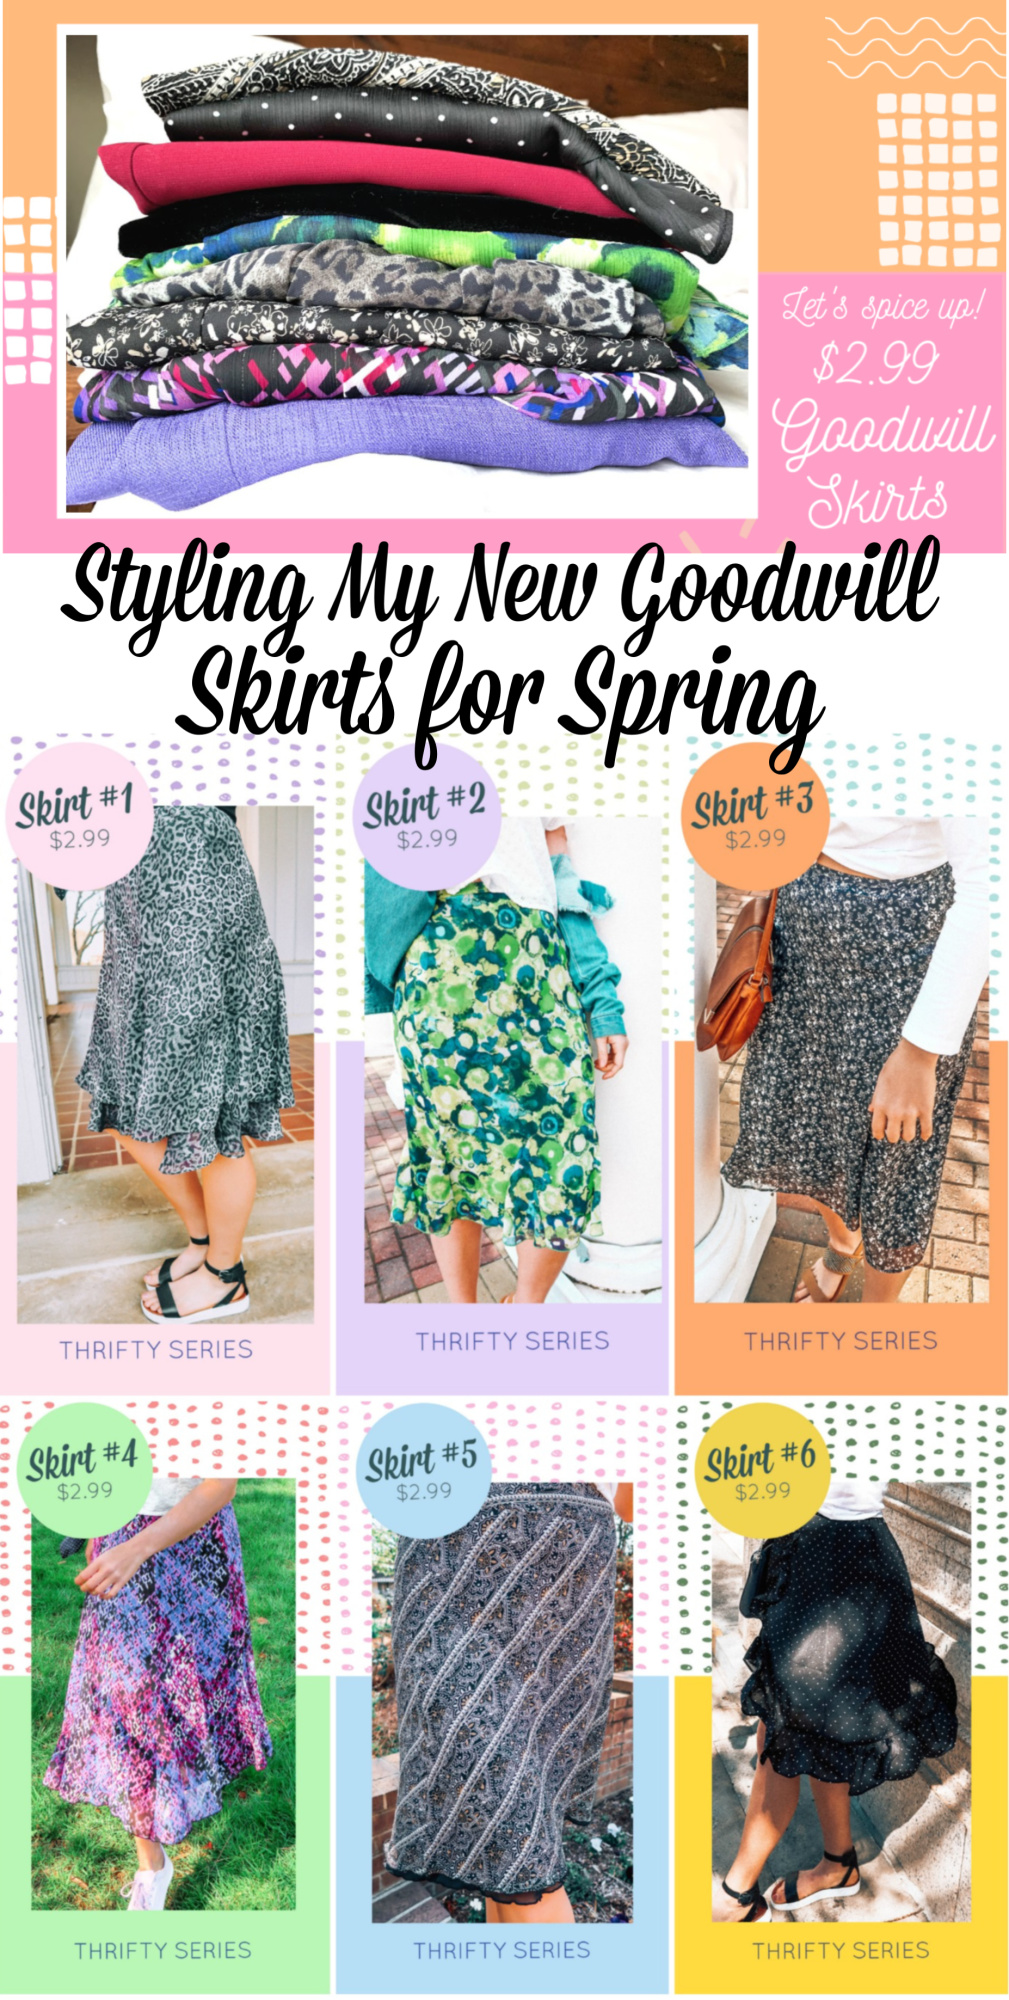 Thrifty Series: Styling My New Goodwill Skirts for Spring